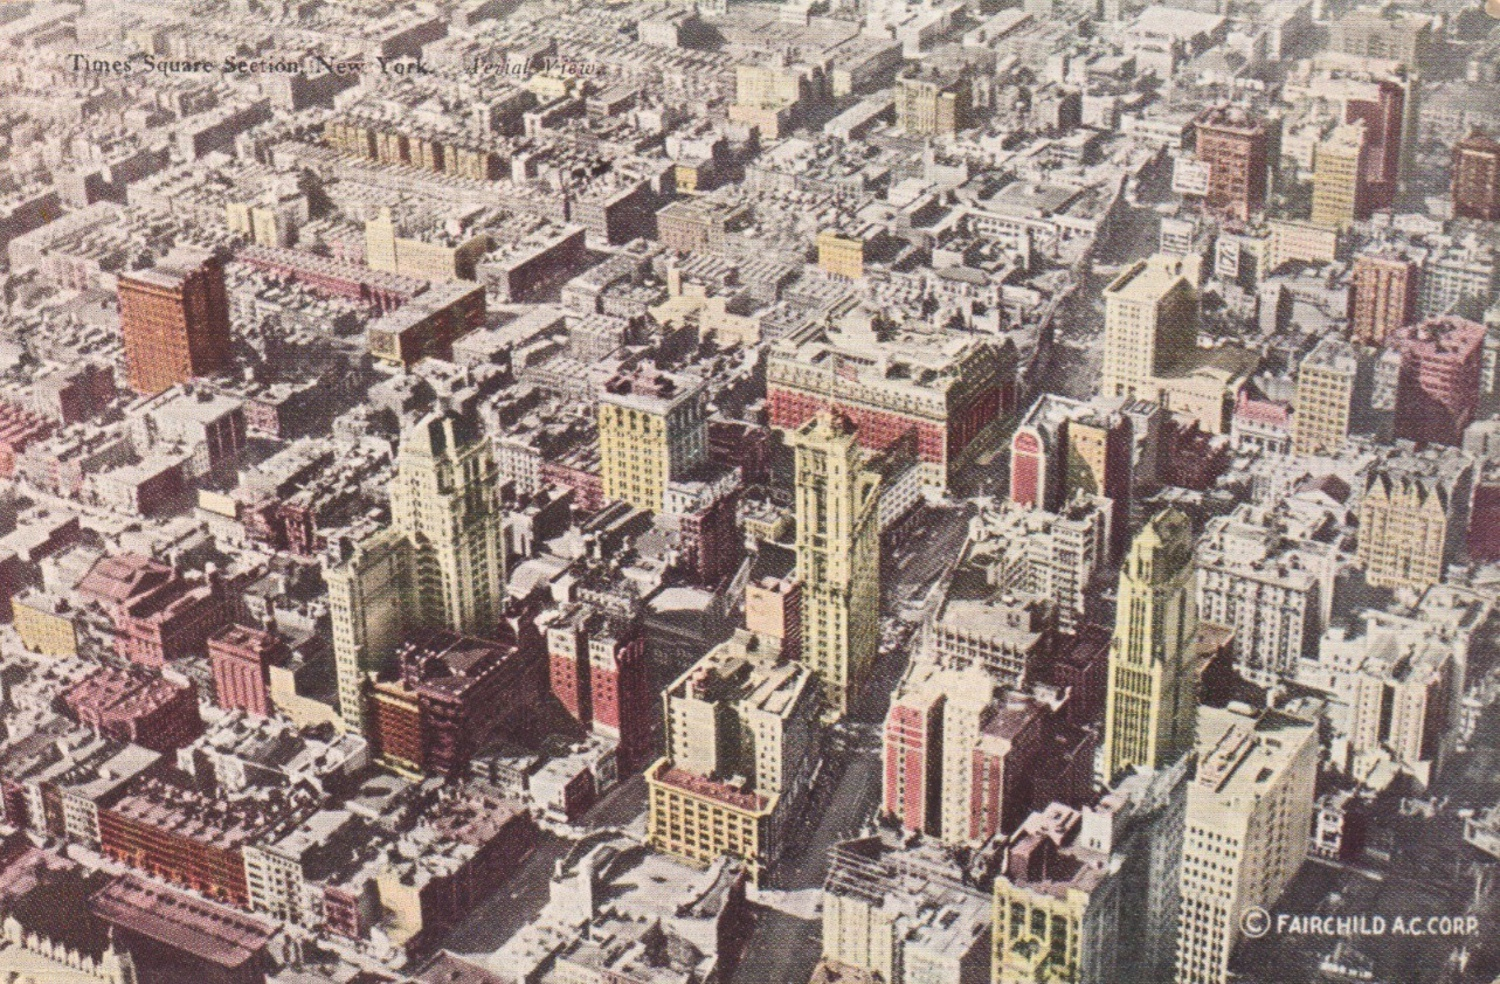 1920s skyscrapers towering over Times Square